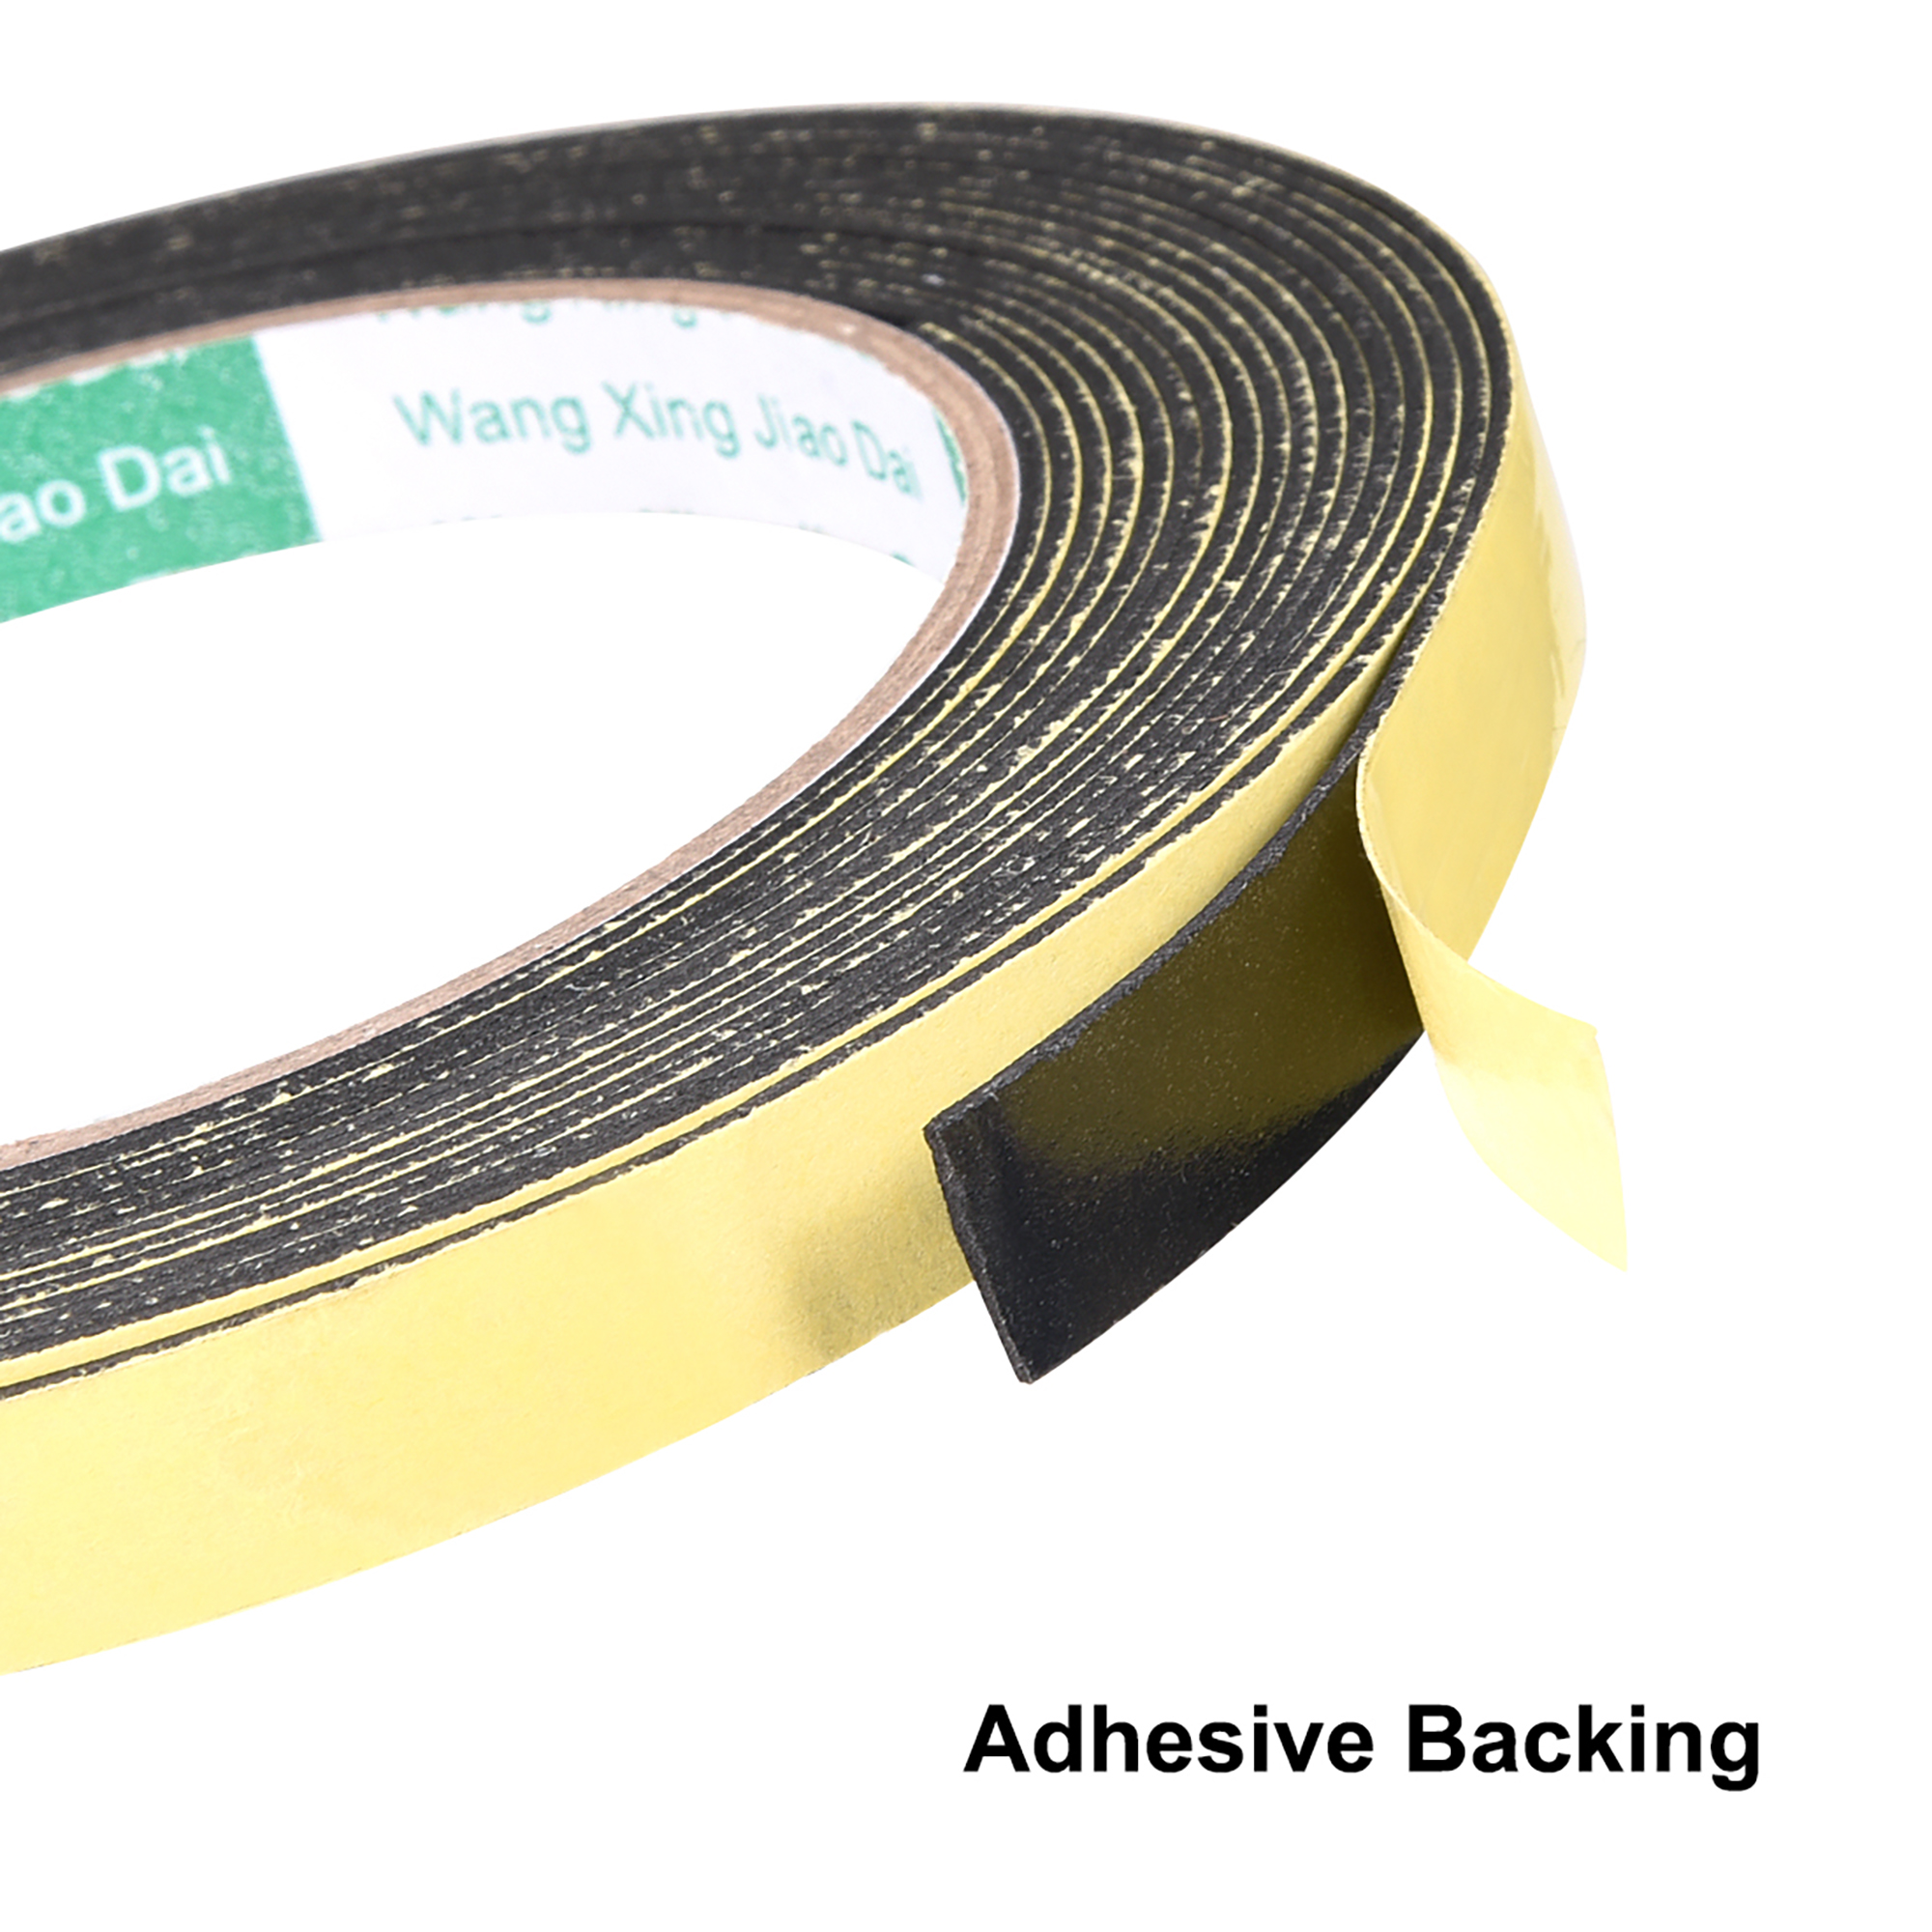 1 mm thick 10 mm wide foam sealing tape weather adhesive tape 2 pieces 16.4 feet long